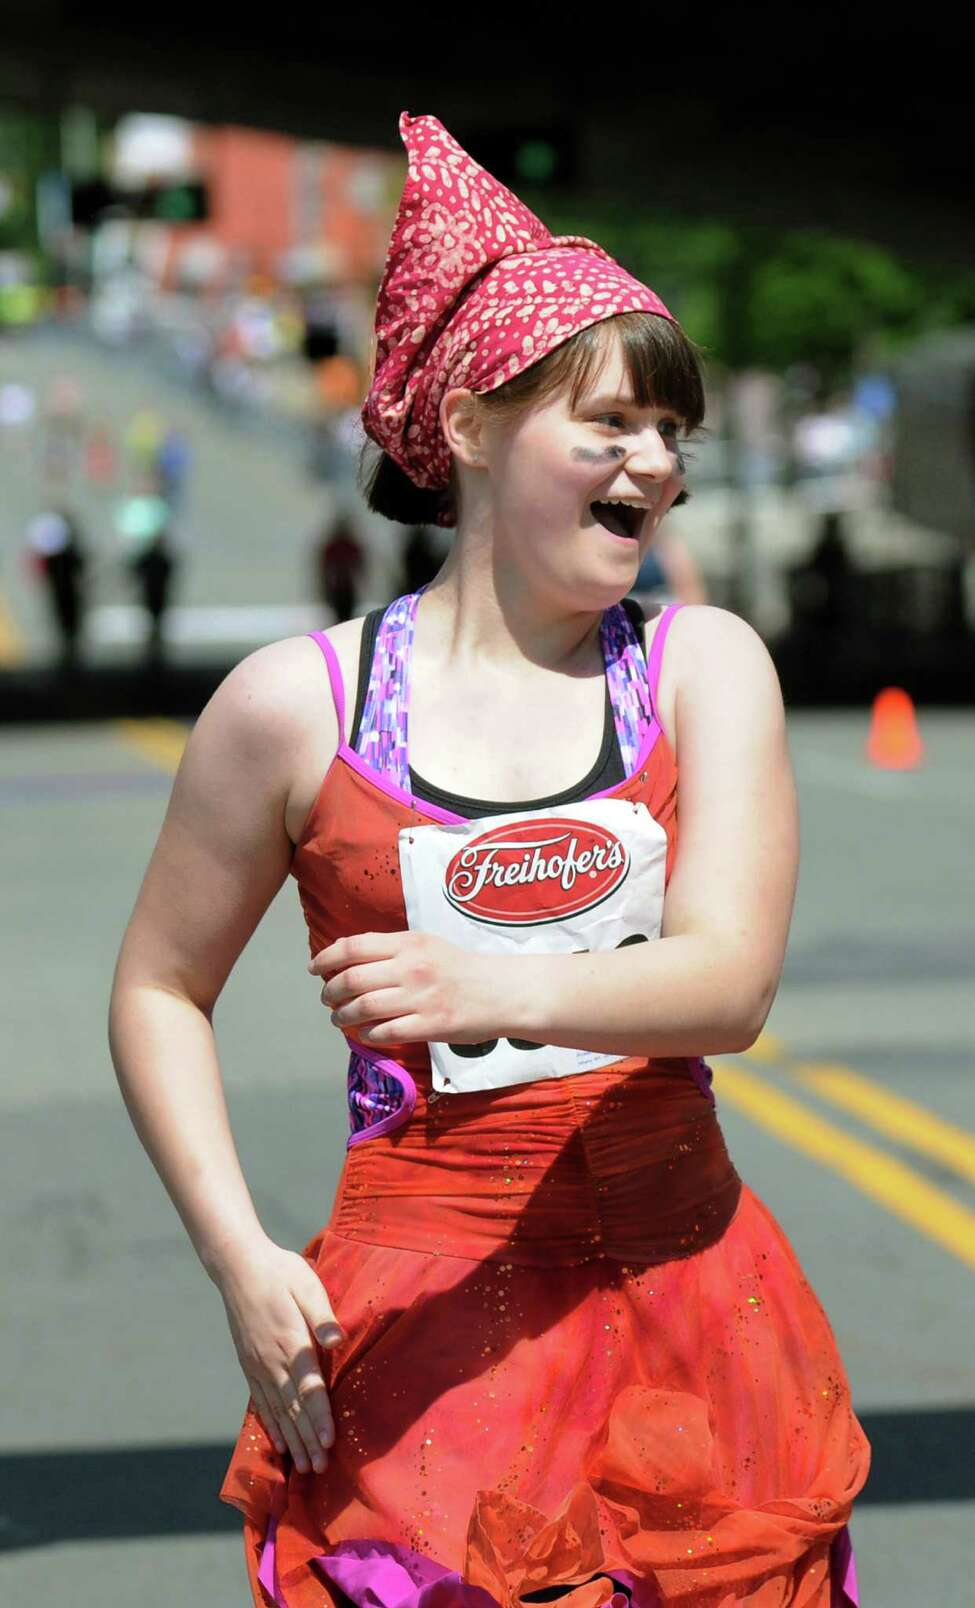 Annika Rosenswig, 12, of Albany wears a festive outfit as she runs during the Freihofer's 36th Run for Women on Saturday, May 31, 2014, in Albany, N.Y. (Cindy Schultz / Times Union)